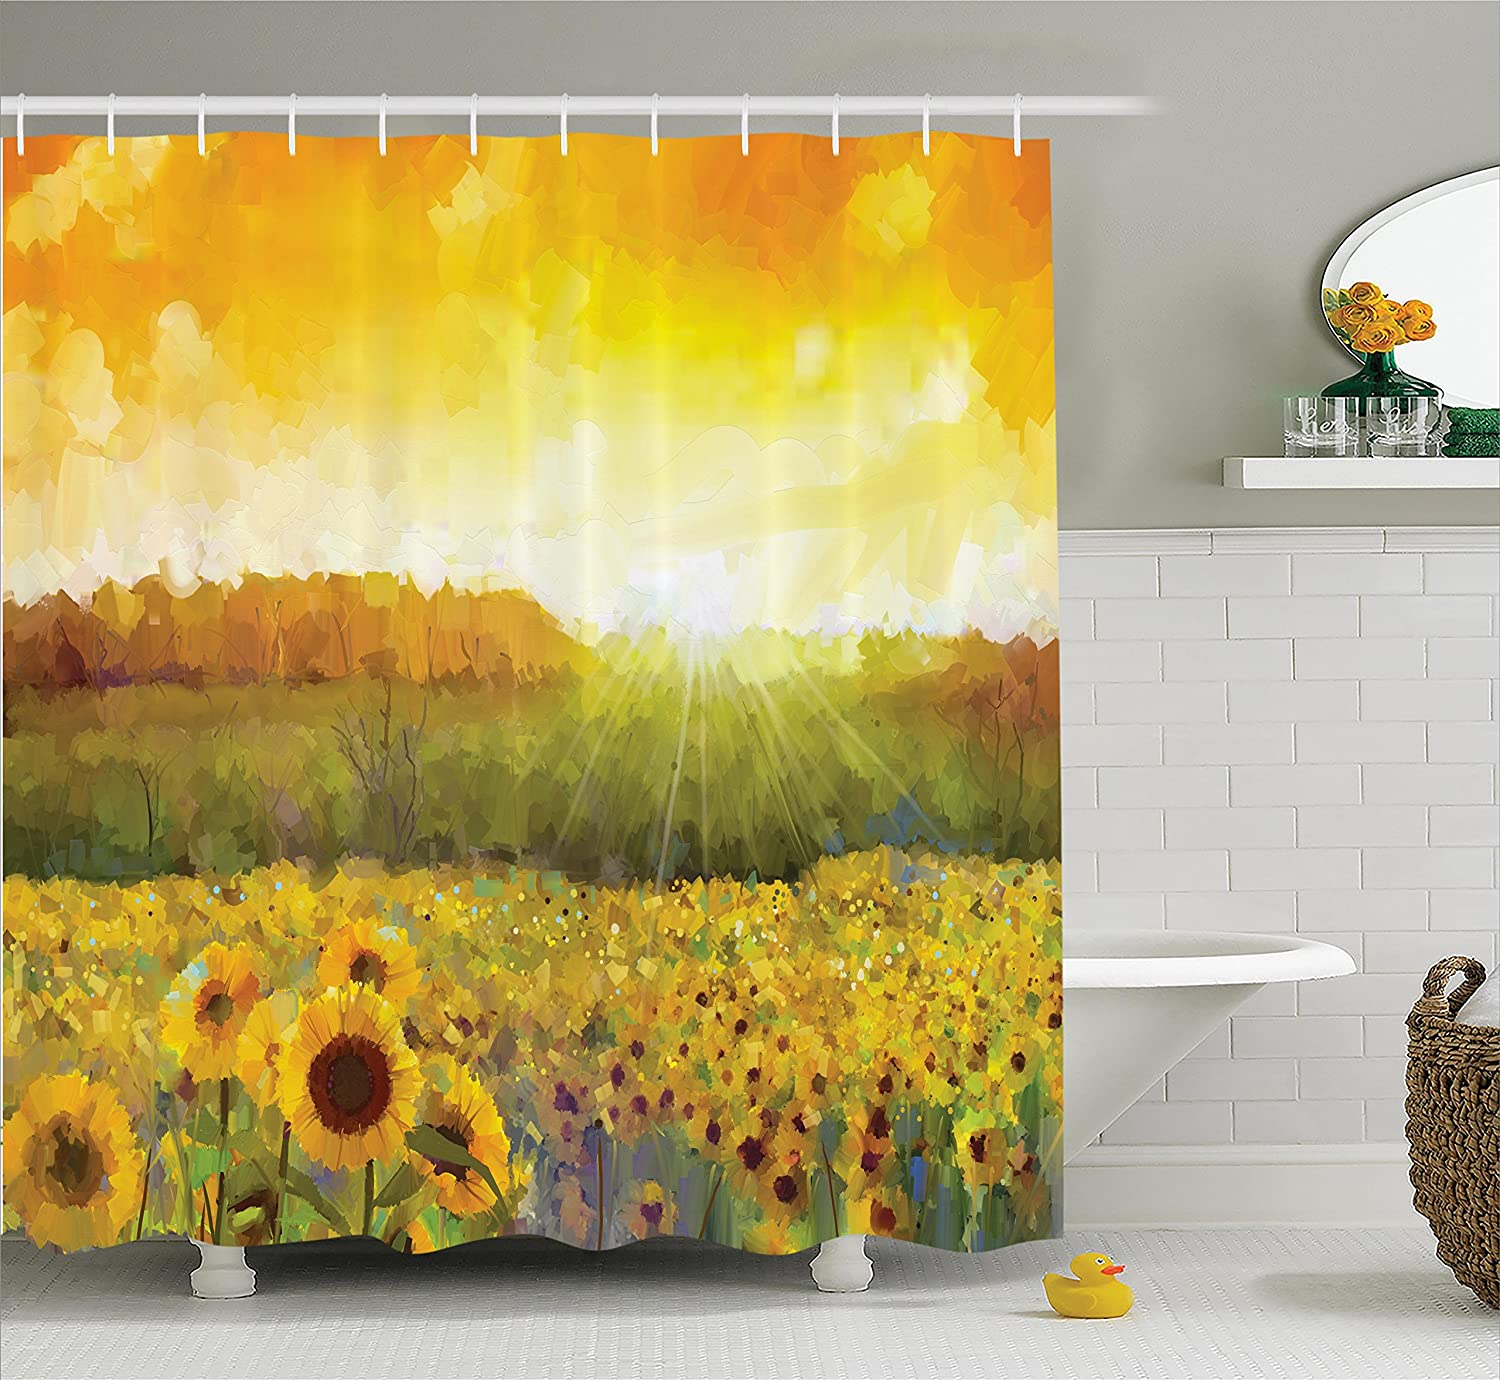 Merveilleux Sunflower Decor Shower Curtain Set By Ambesonne, Landscape Art With A  Golden Sunflower Field And ...